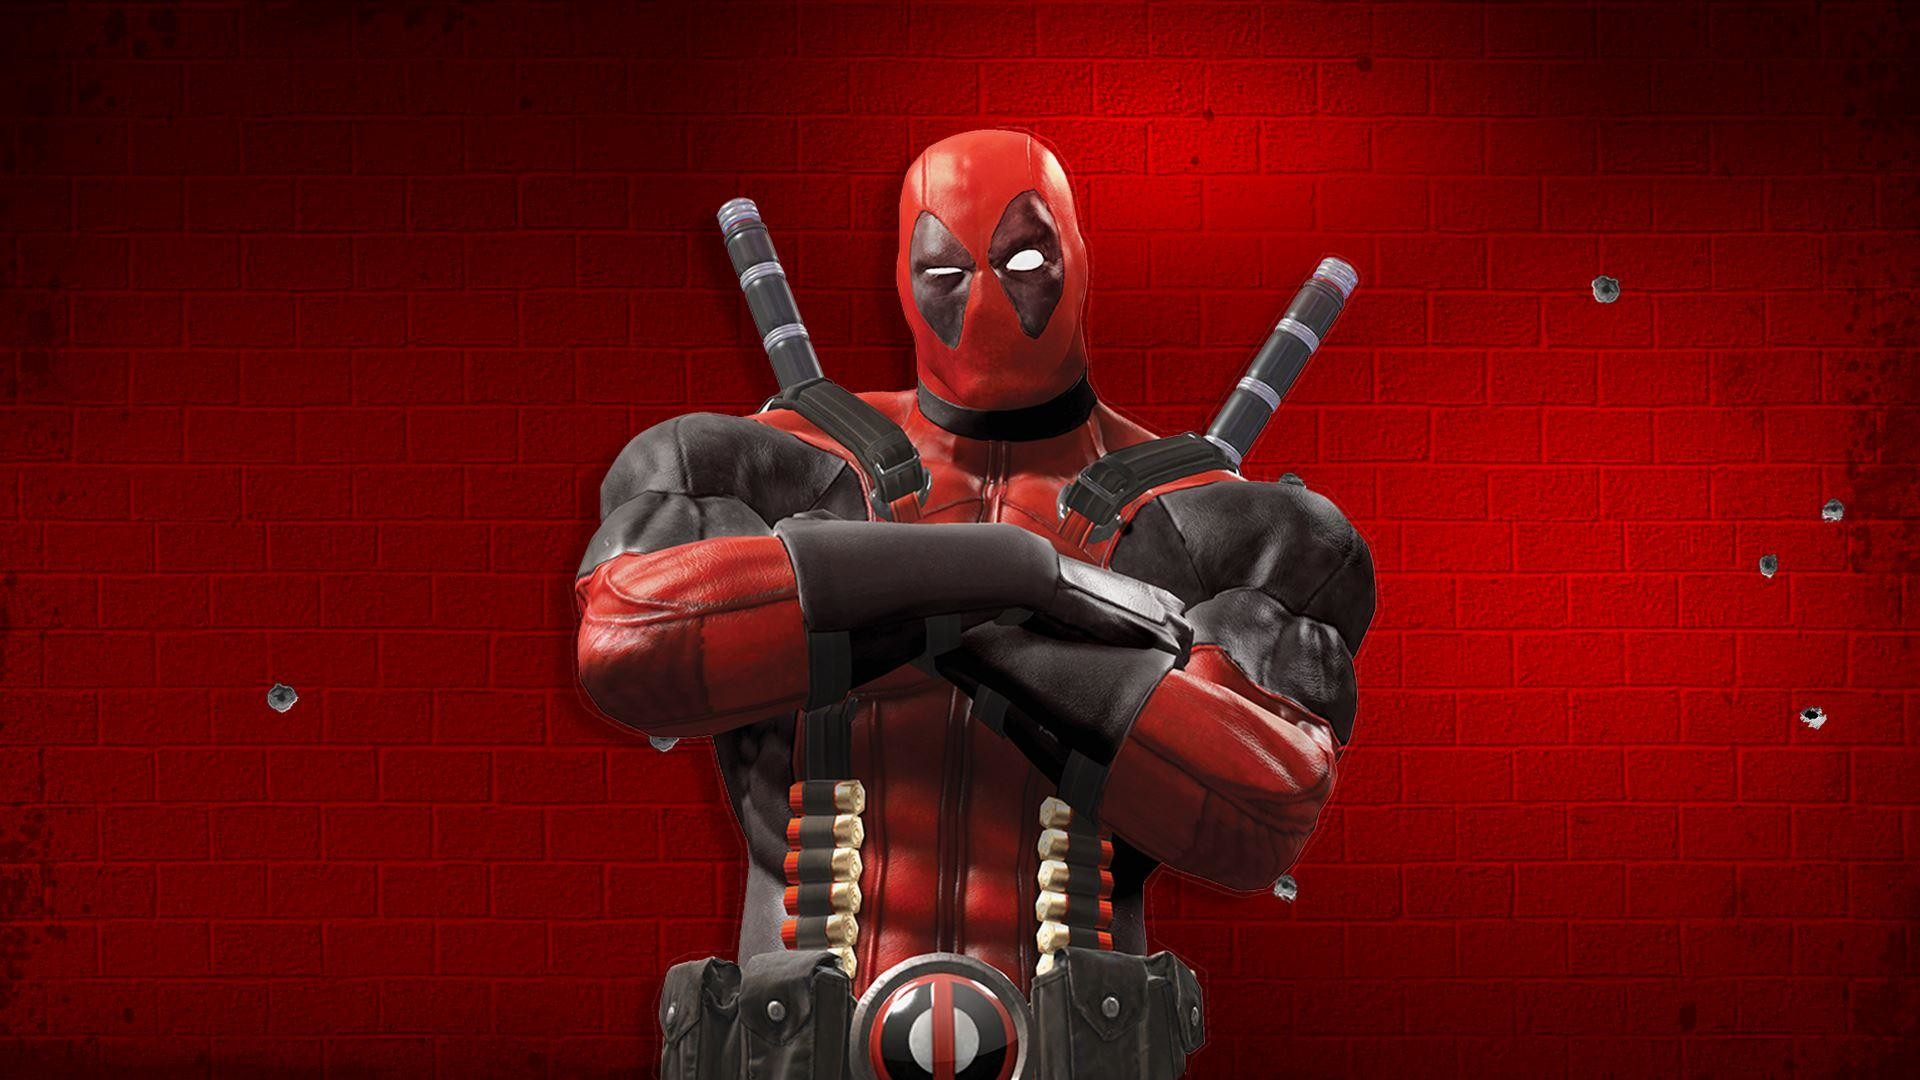 Deadpool 1080p wallpaper 79 images for Deadpool wallpaper 1920x1080